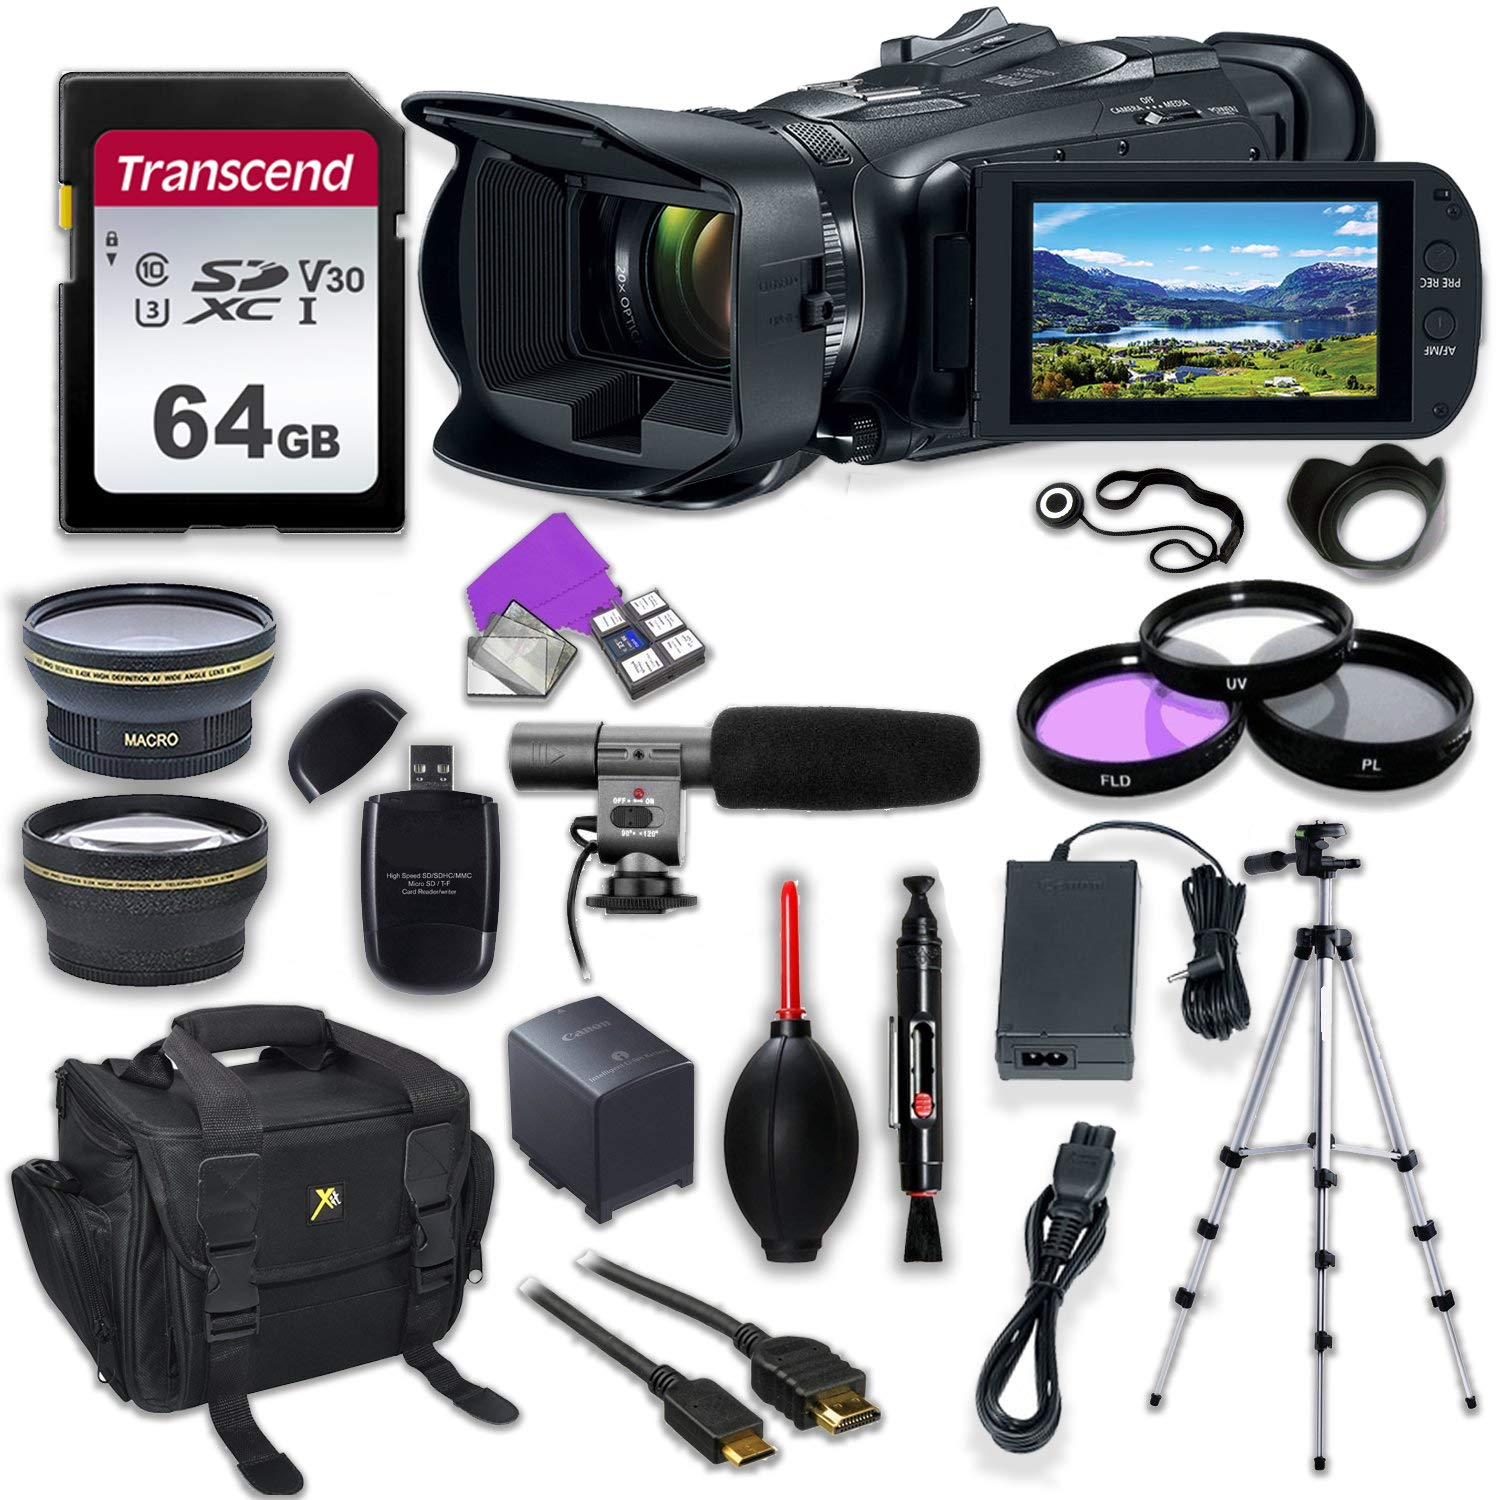 Canon Vixia HF G50 UHD 4K Camcorder with Premium Accessory Kit Including Padded Bag, Microphone, Filters & 64GB High Speed U3 Memory by Canon